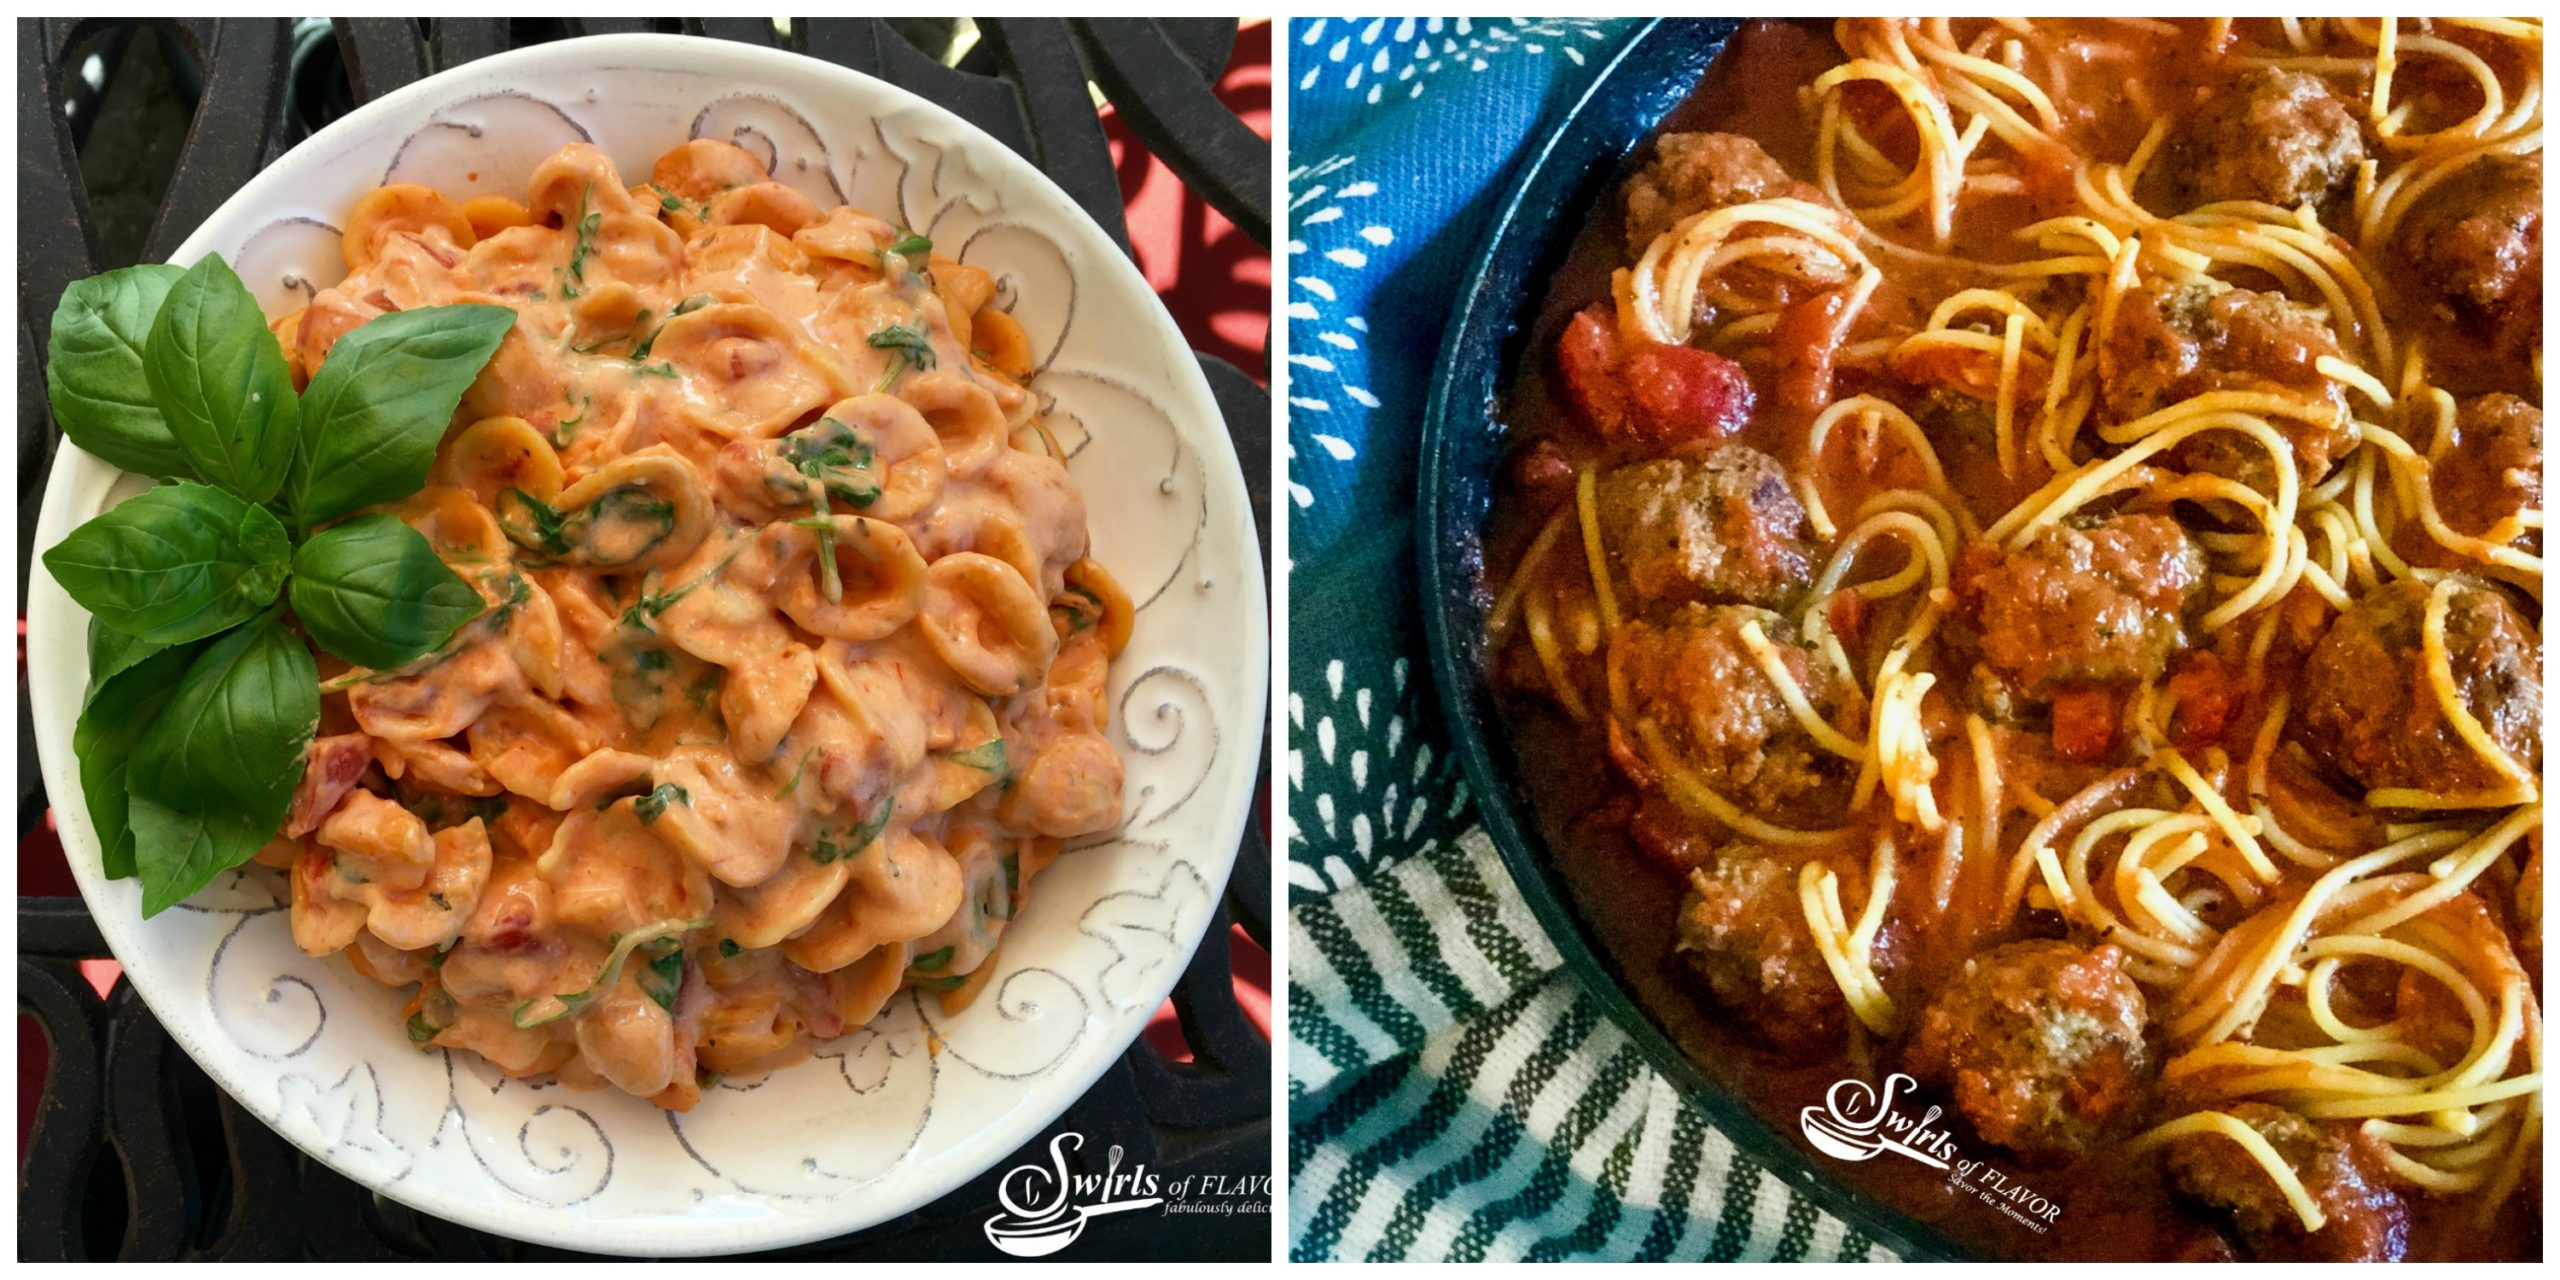 Creamy Tomato Pasta and One Pot Spaghetti and Meat Balls